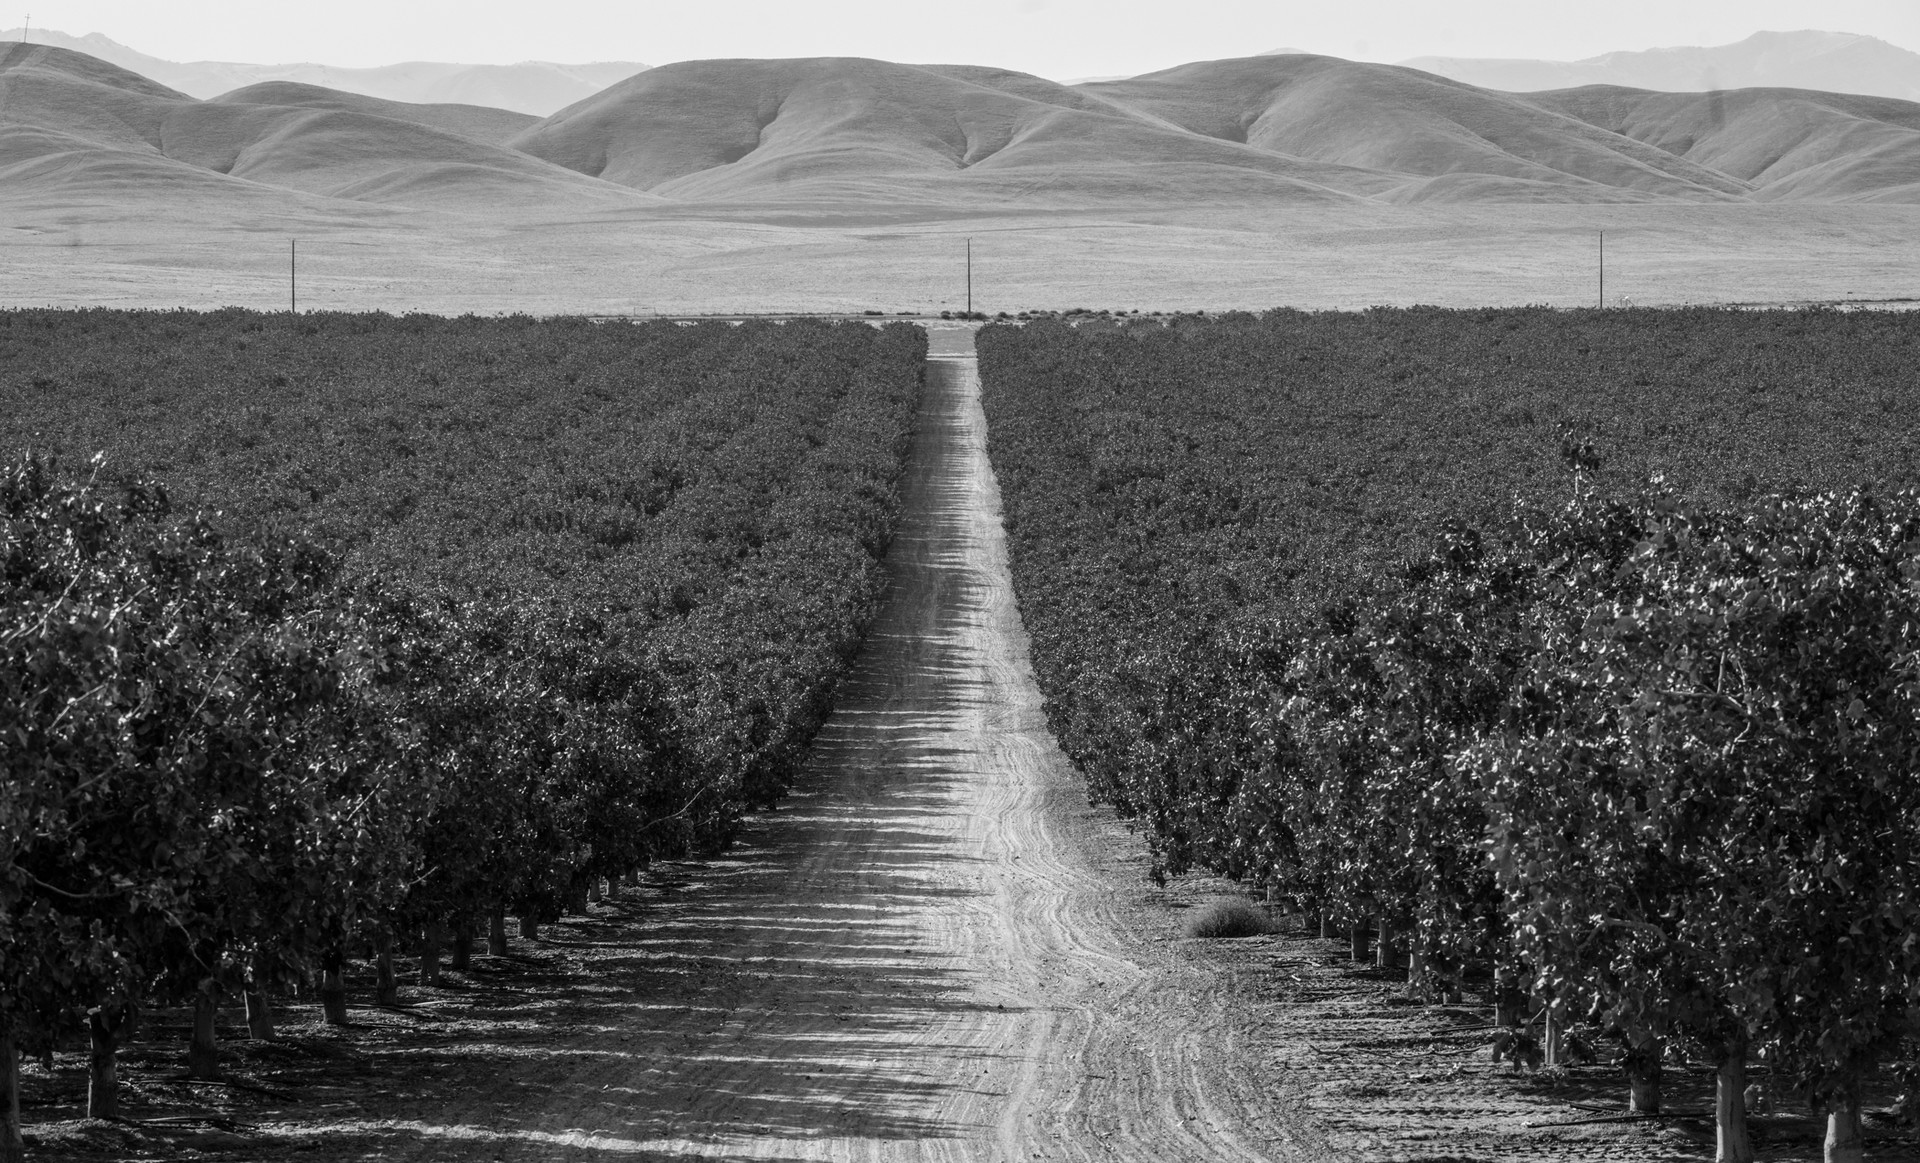 Mark Arax: Chasing the Water and Dust Behind the California Dream